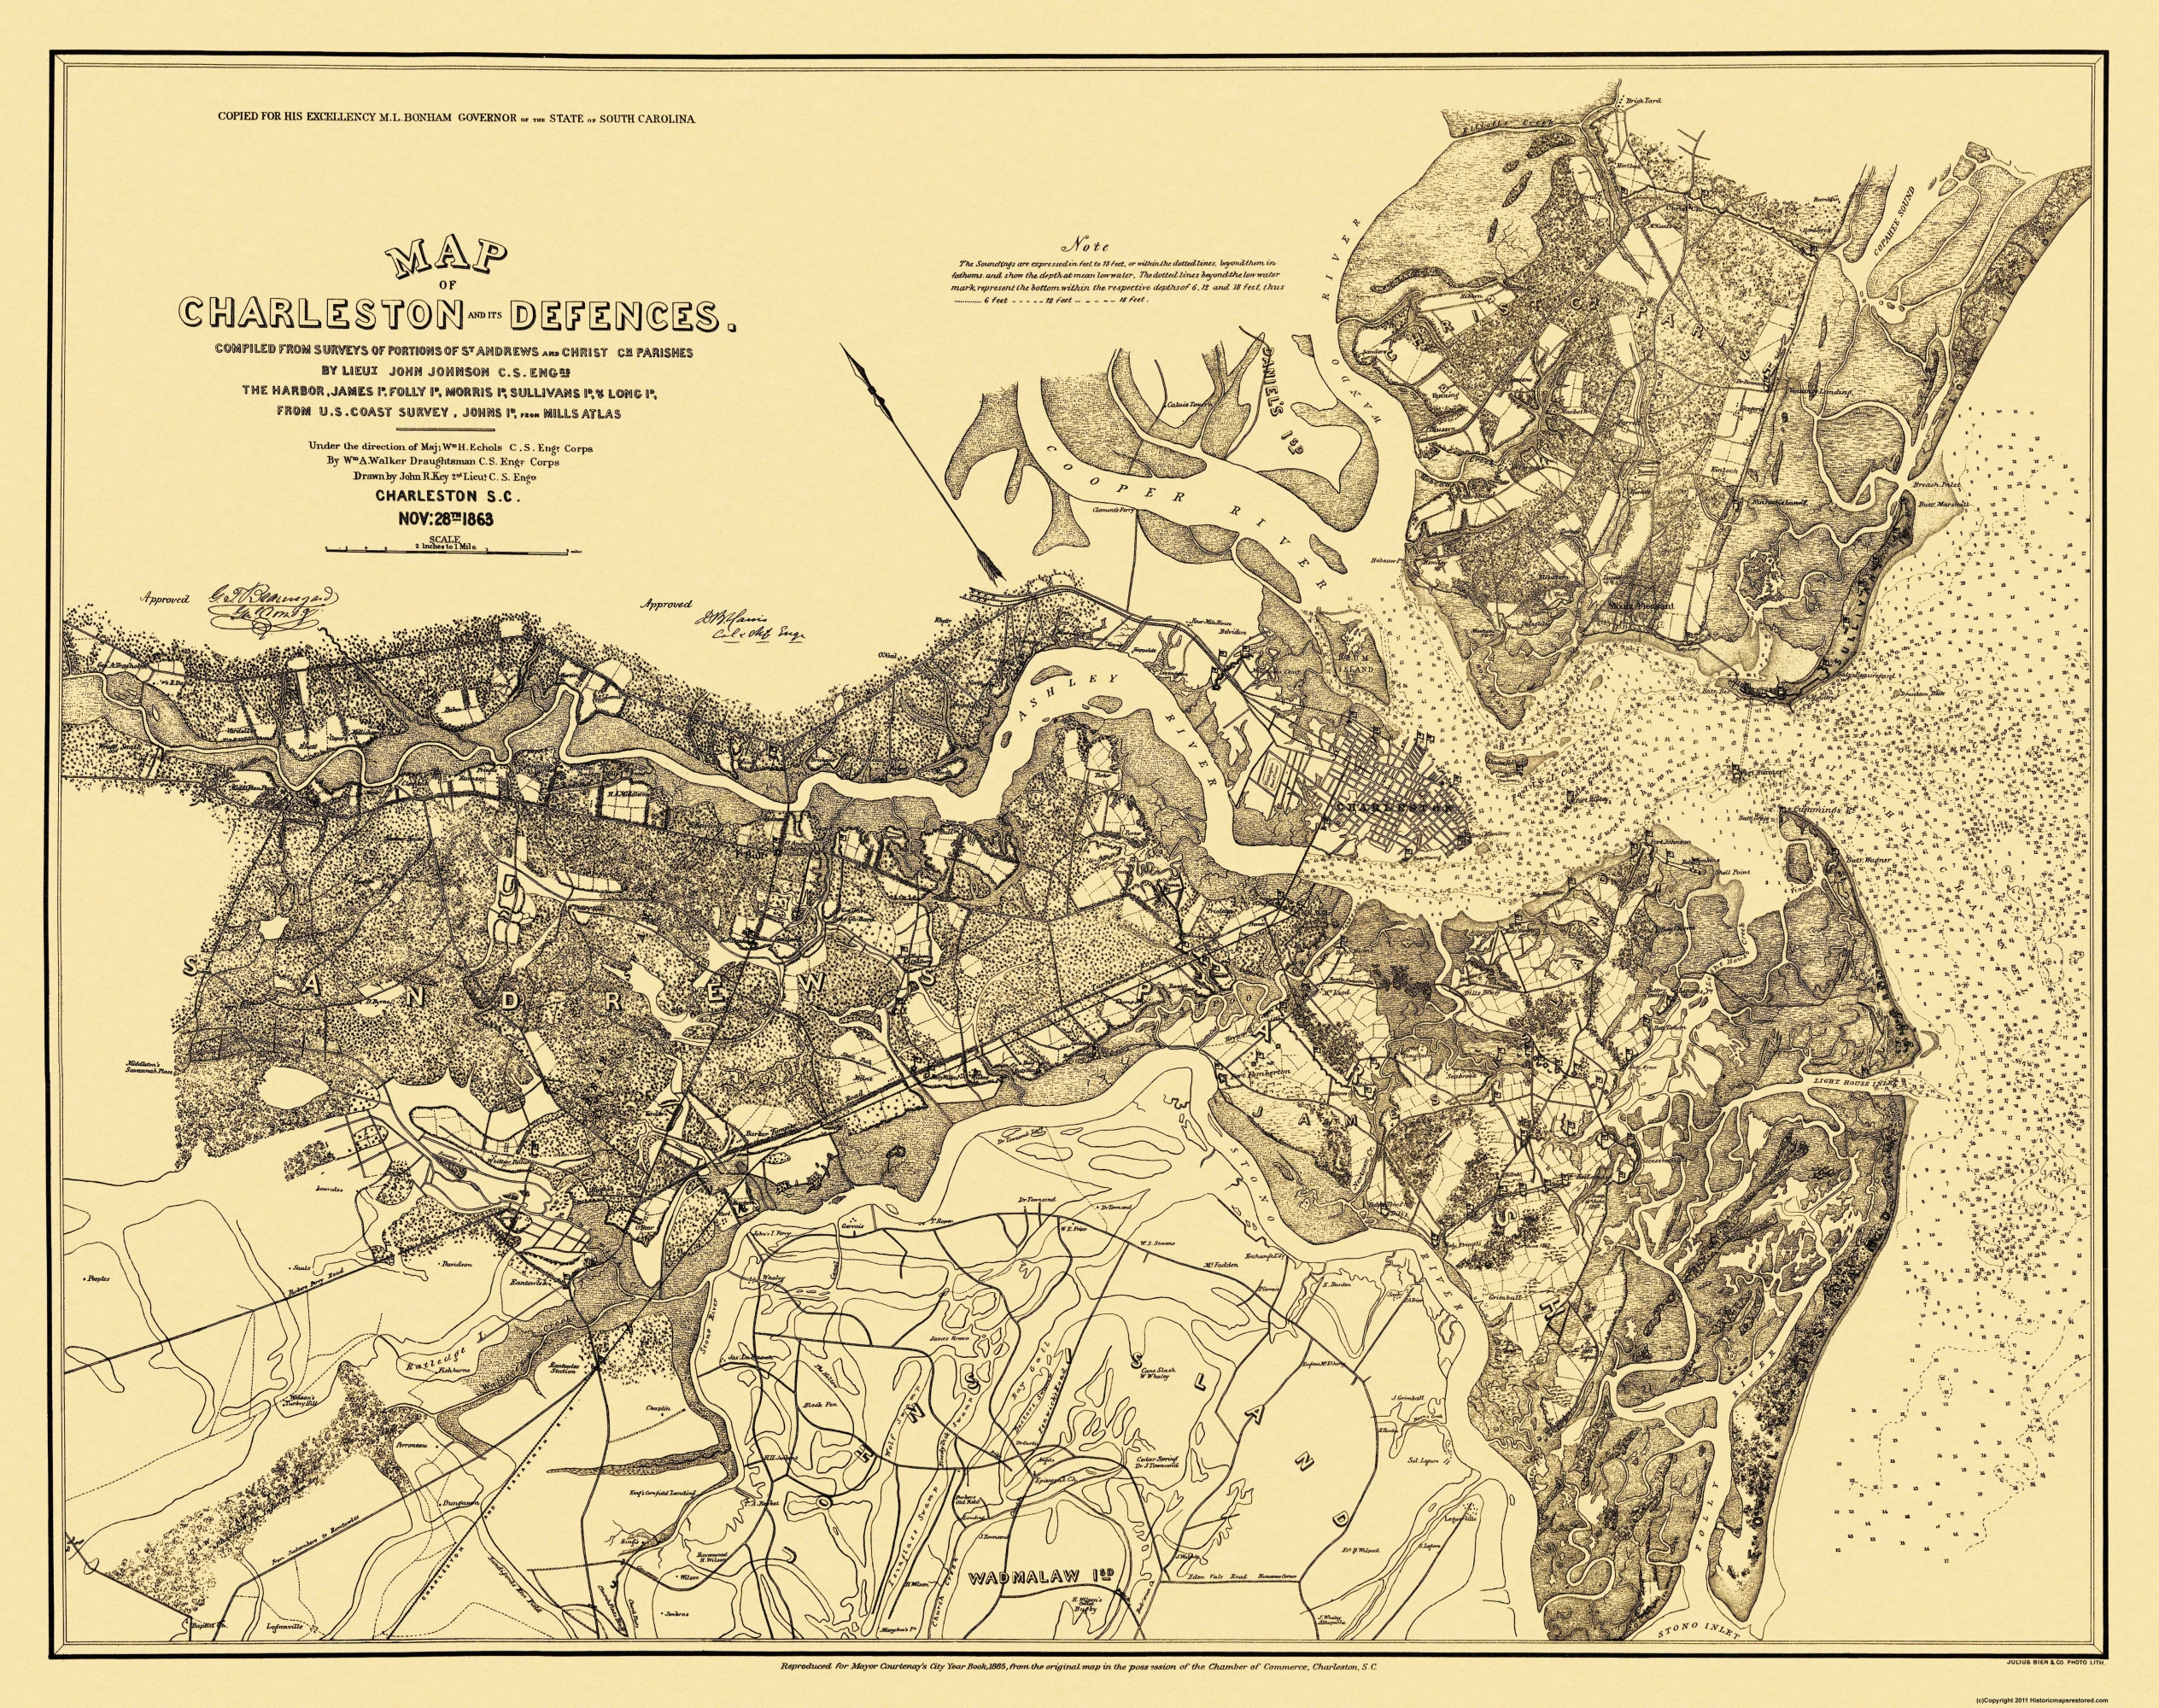 Civil War Map Charleston Defenses 1863